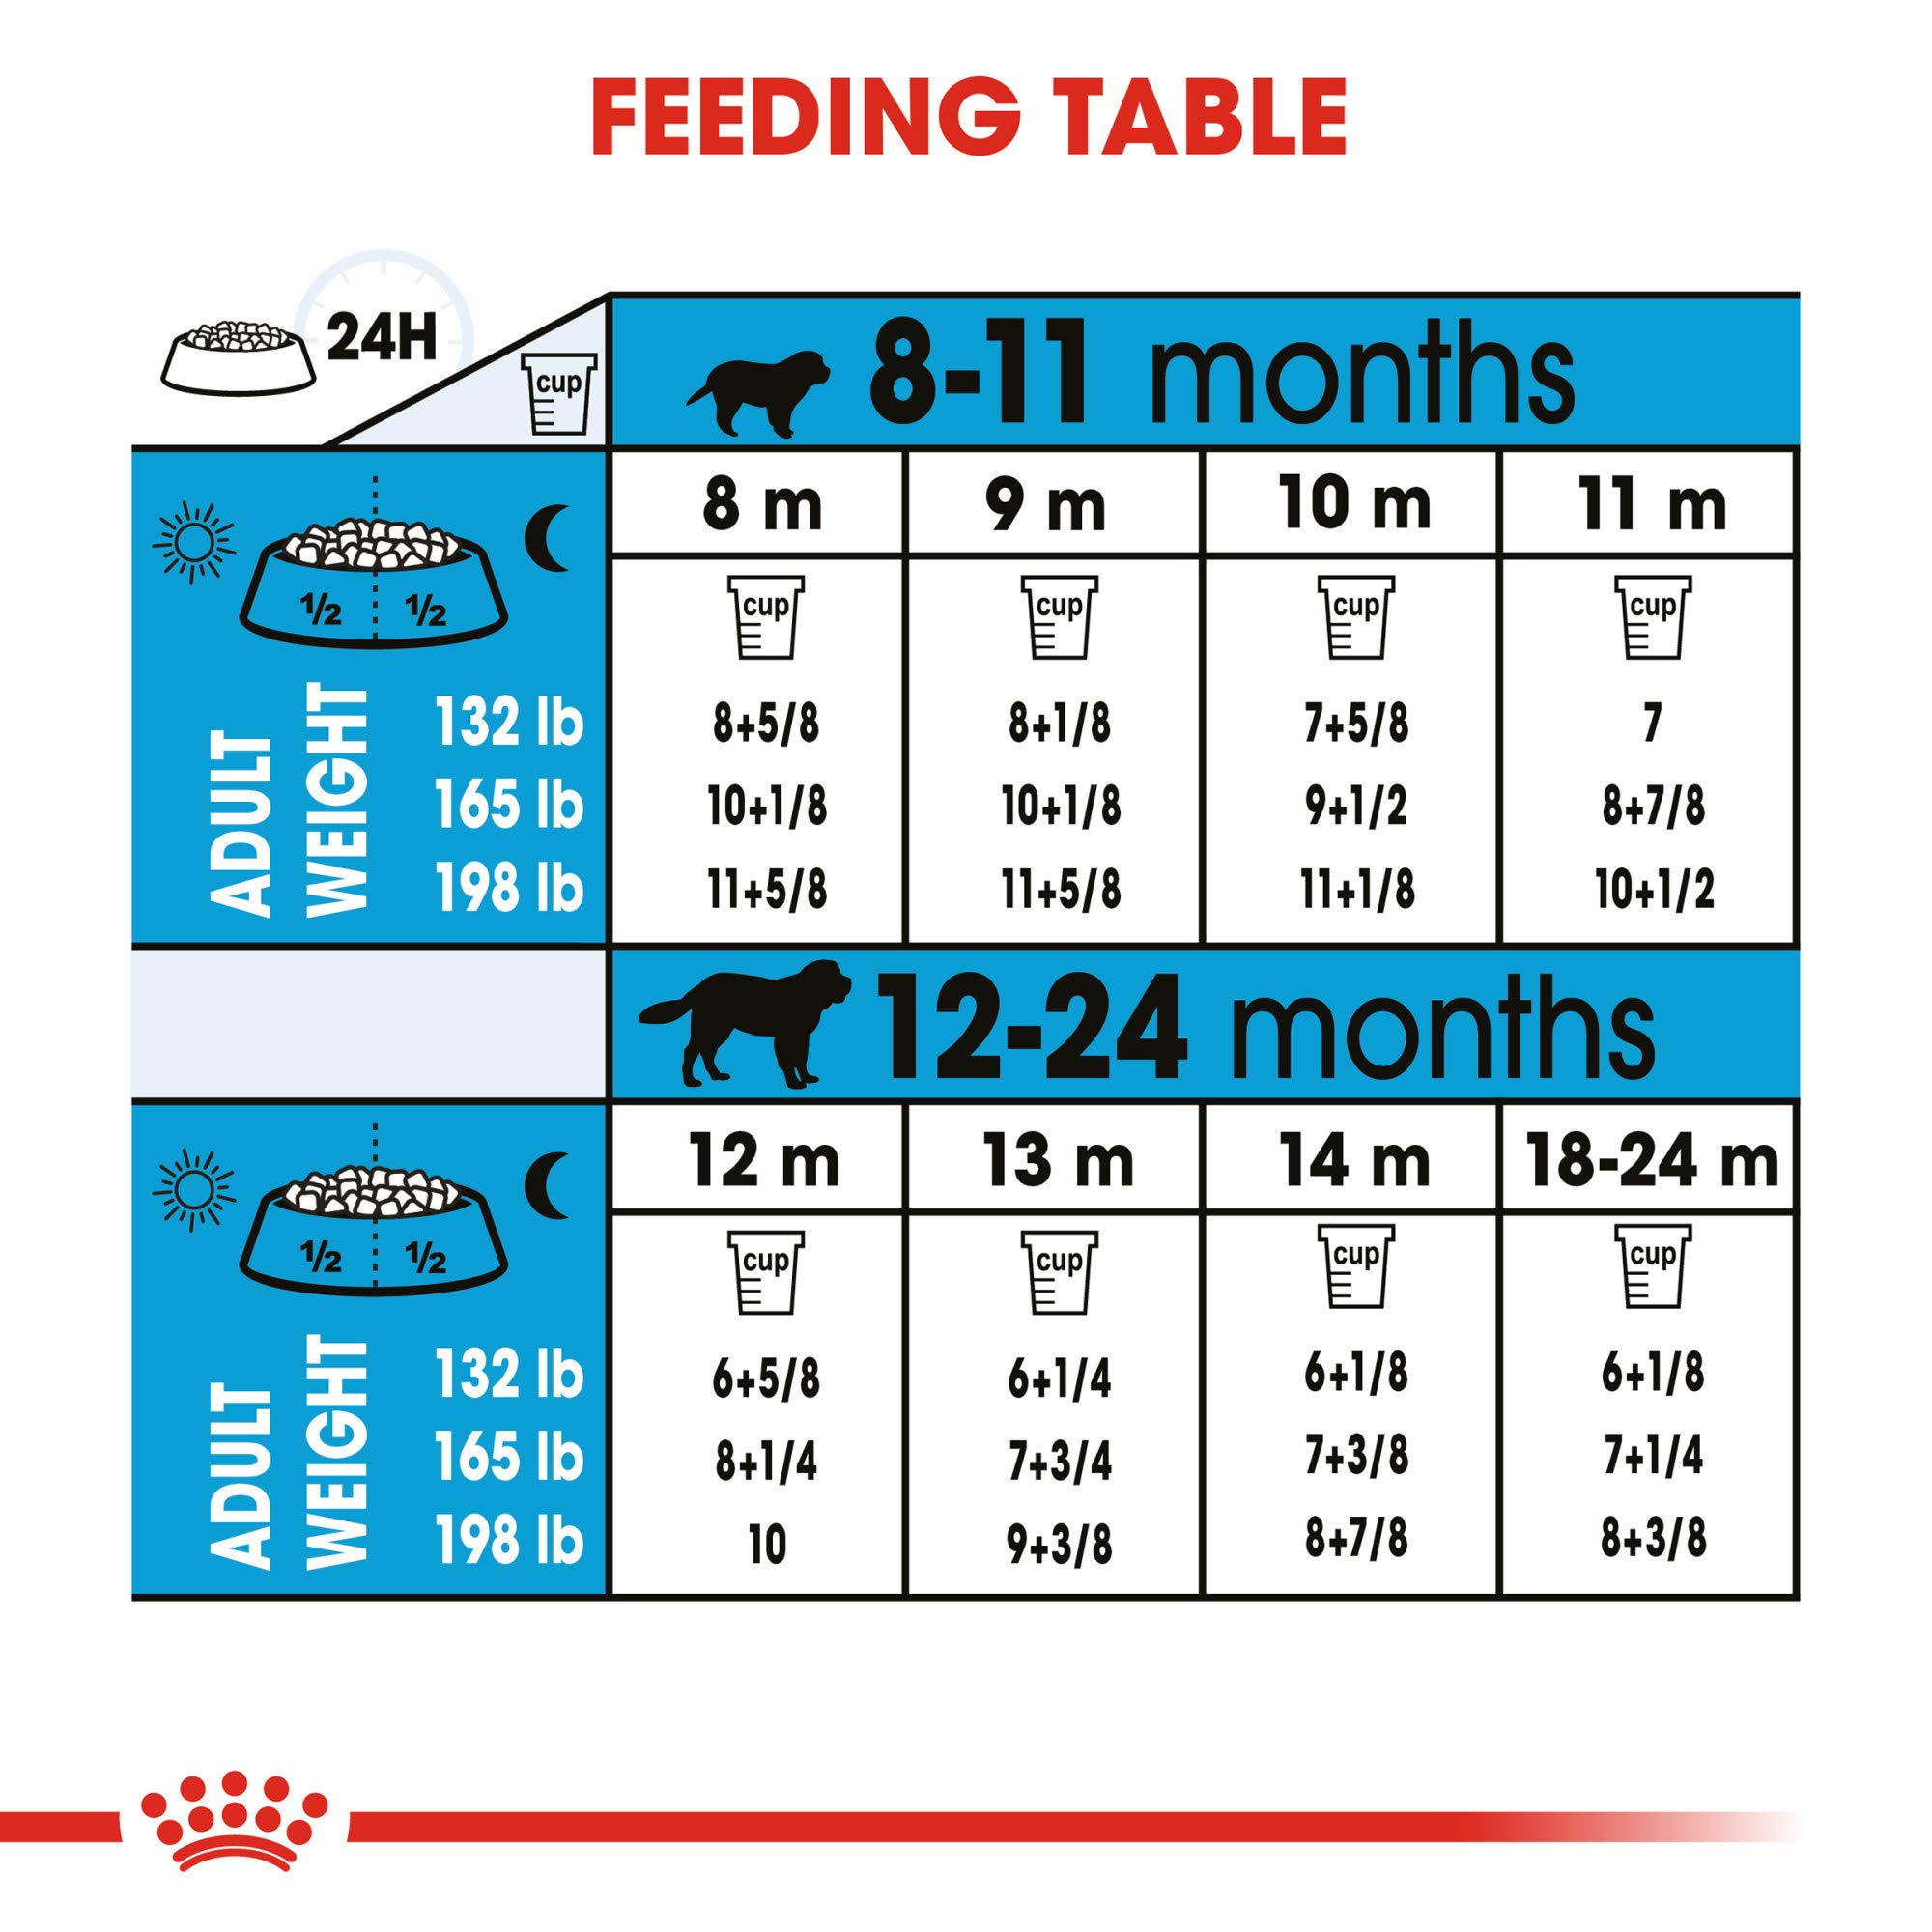 Royal Canin Giant Junior Dry Puppy Food, 30 Lb. by Royal Canin (Image #4)